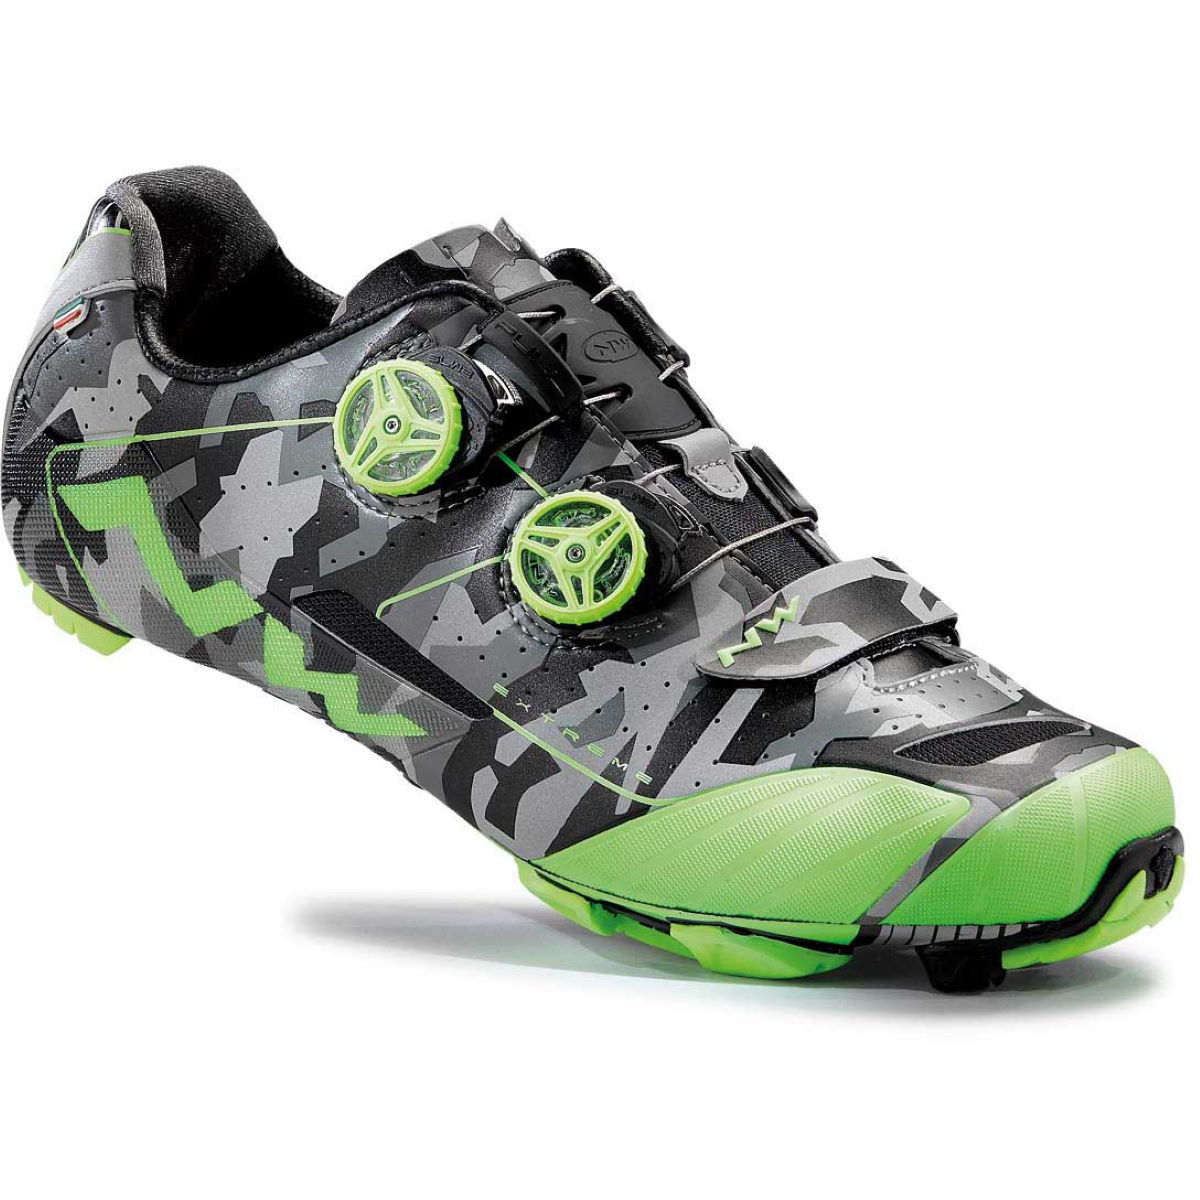 Chaussures VTT Northwave Extreme XC - 39 Reflective Camo/Gree